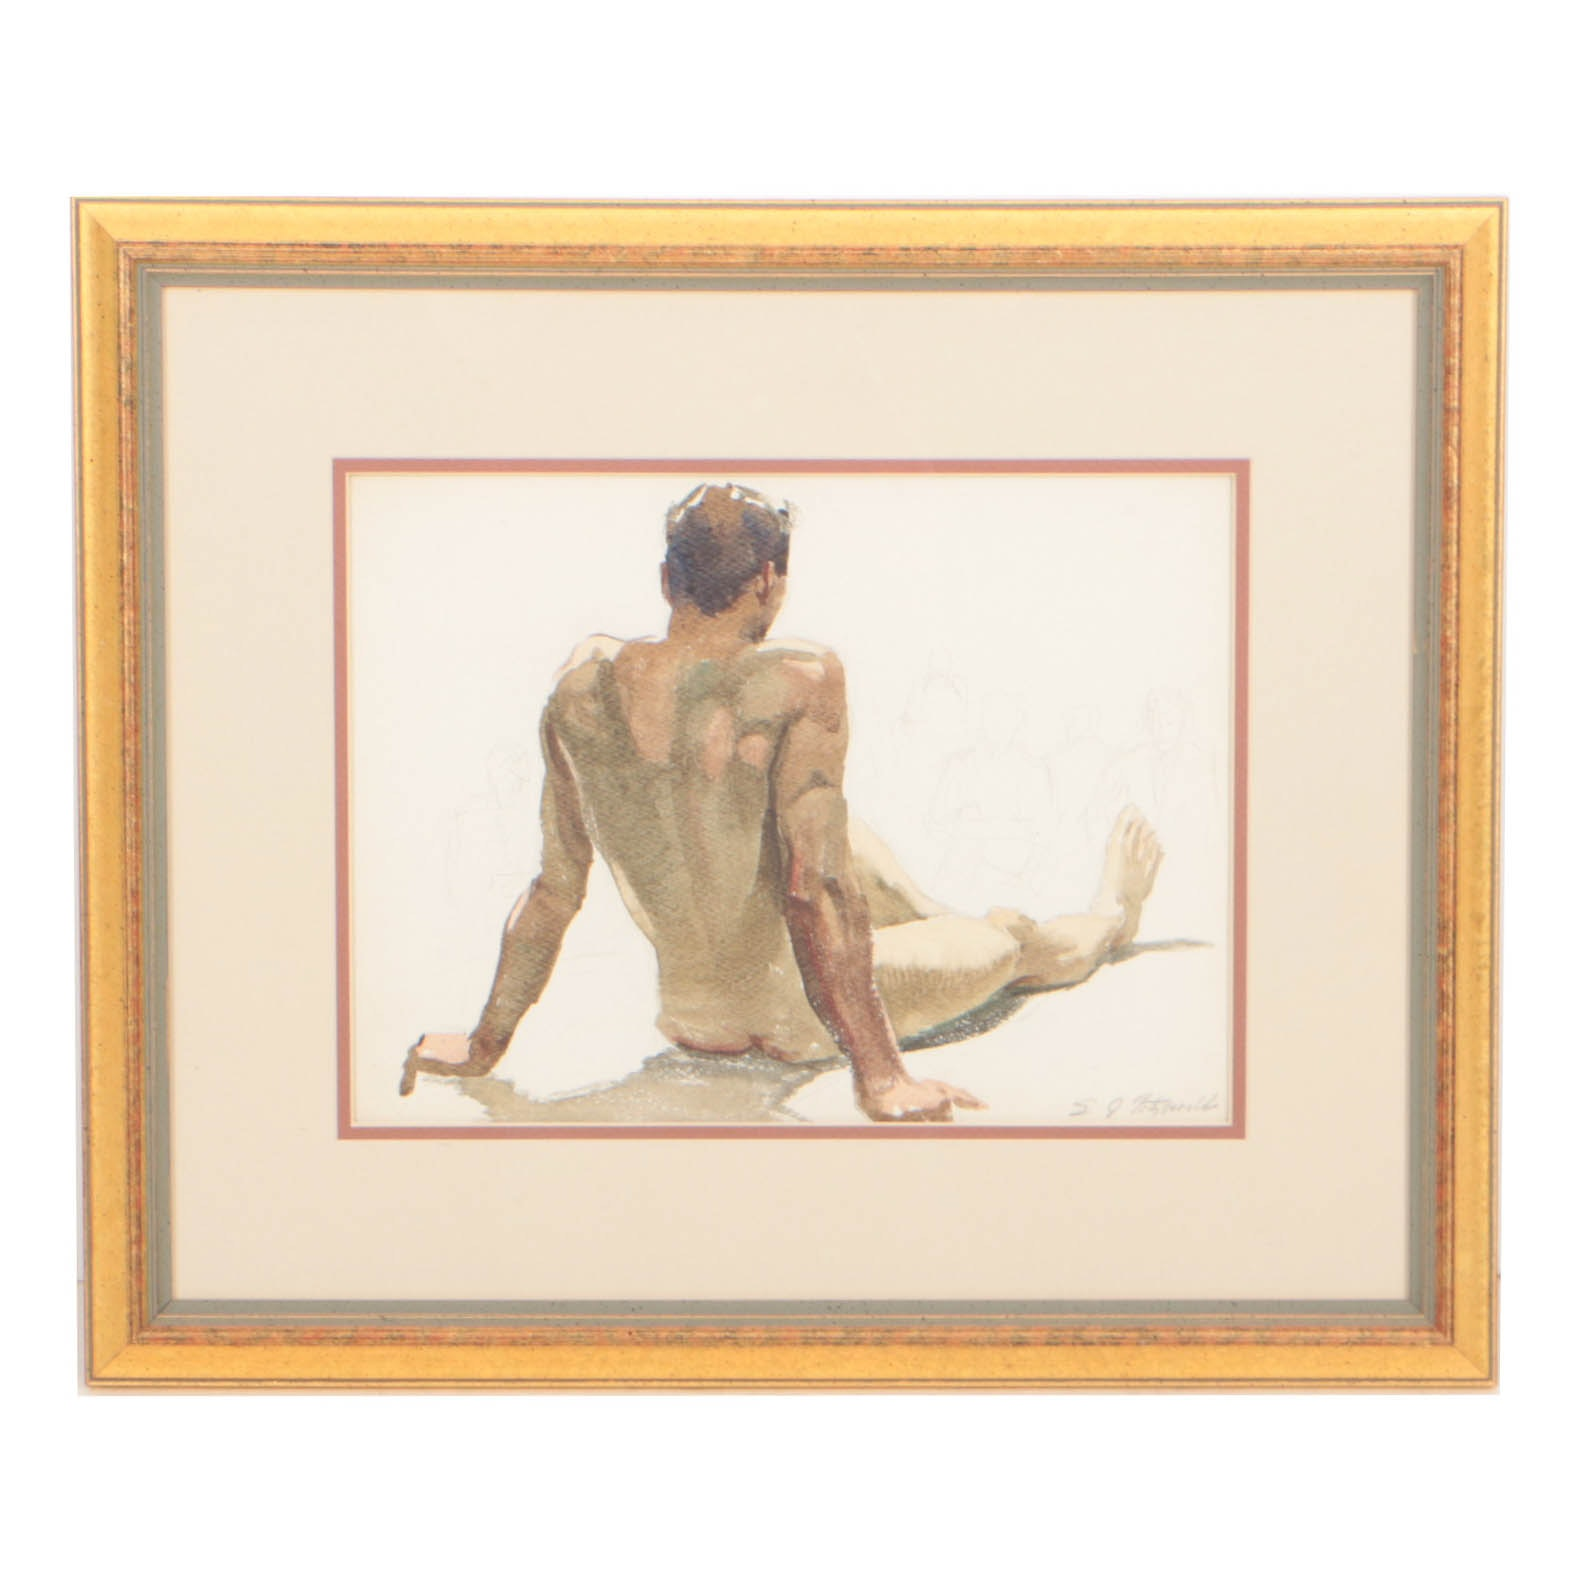 Edmond J. Fitzgerald Watercolor, Seated Nude Figure